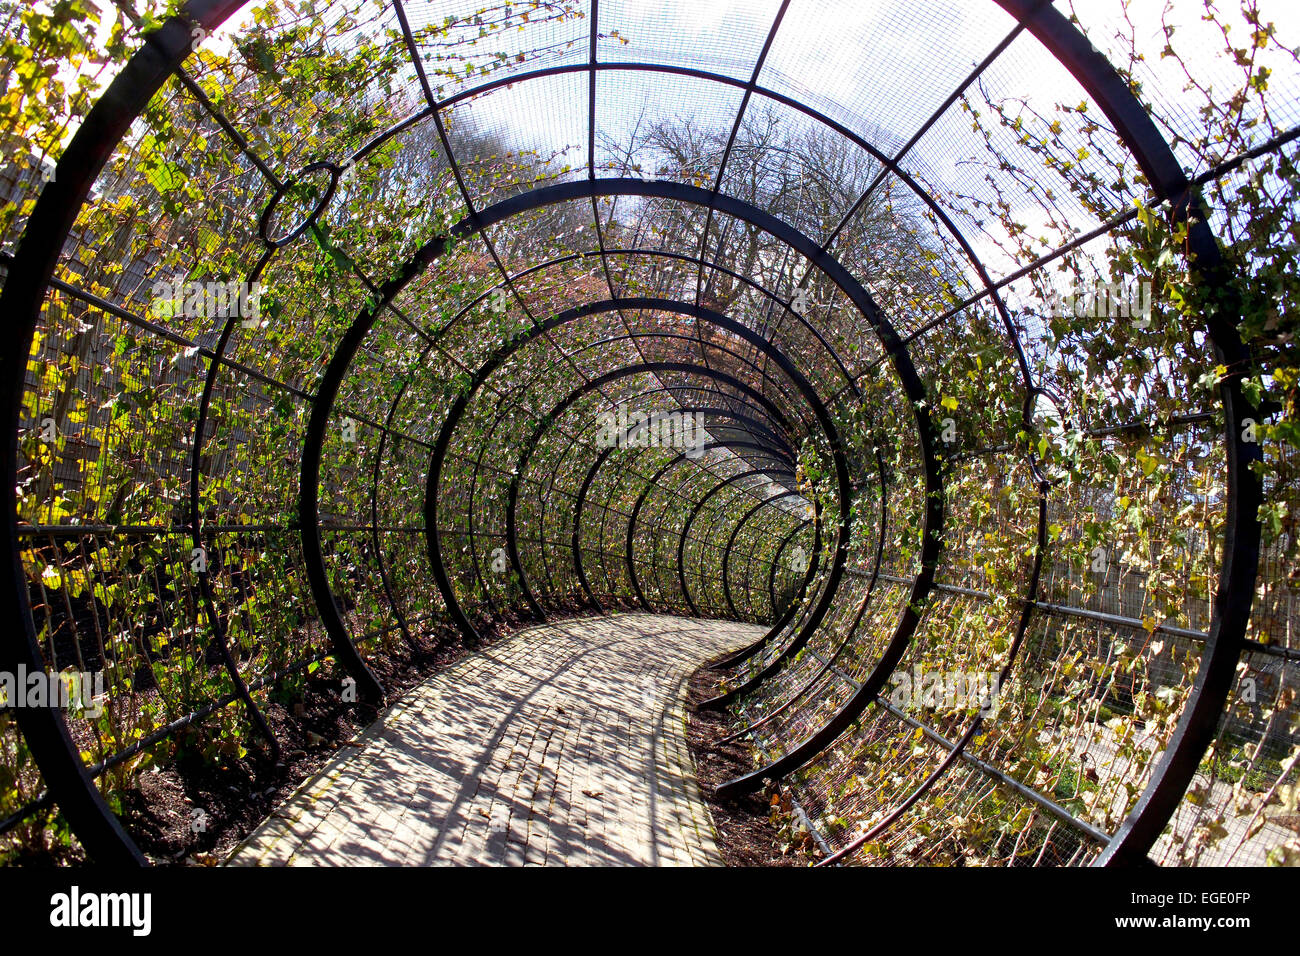 The Poison Ivy tunnel at Alnwick Gardens Stock Photo: 78983738 - Alamy